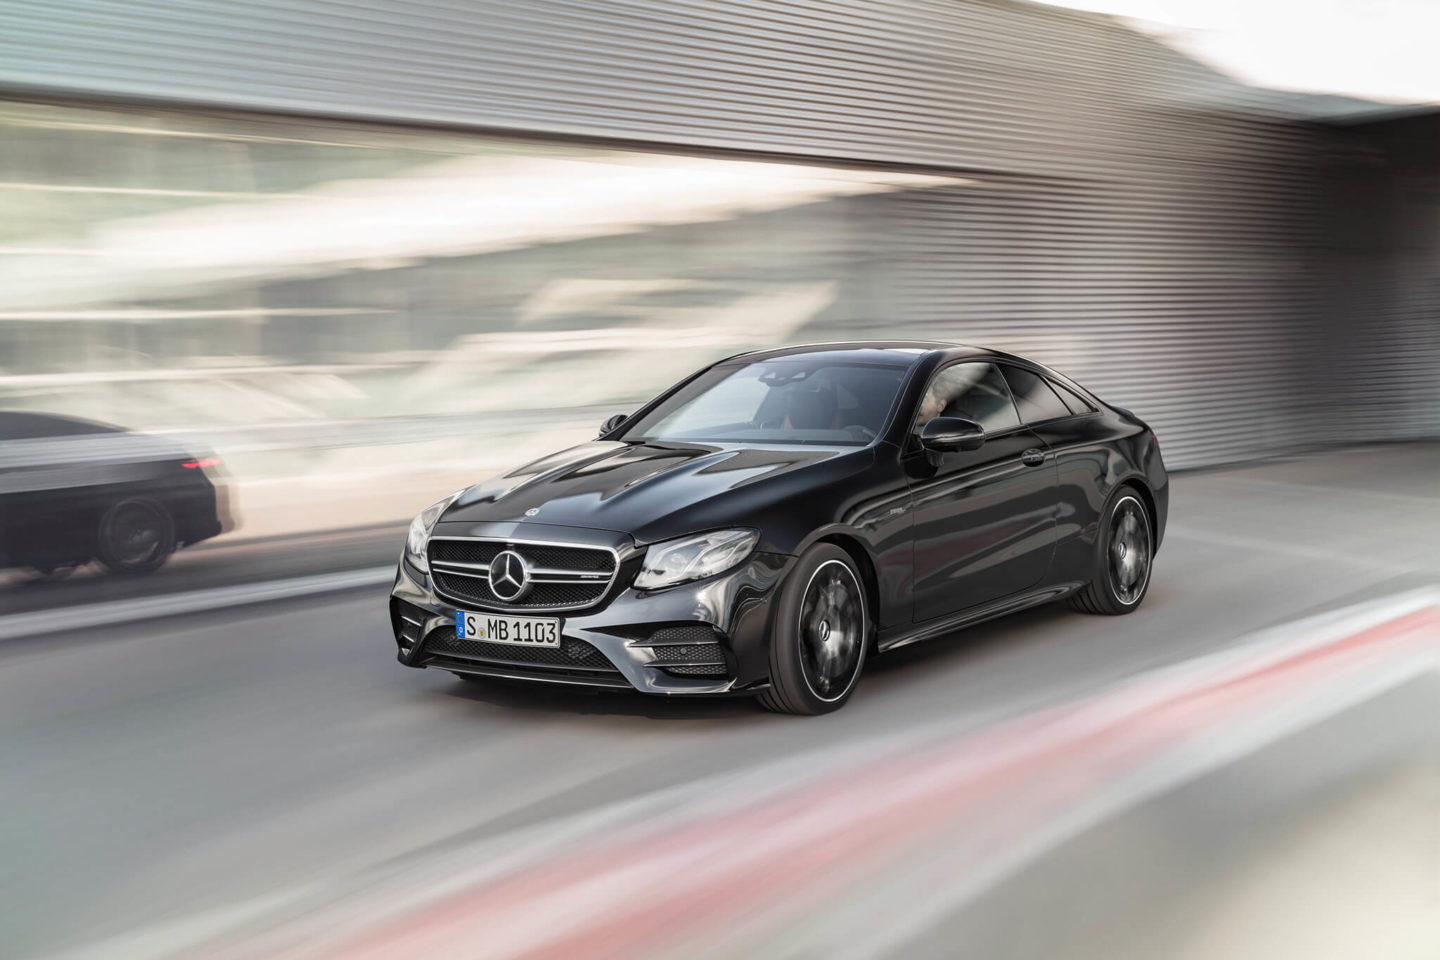 Mercedes-AMG E 53 4Matic+ Coupe